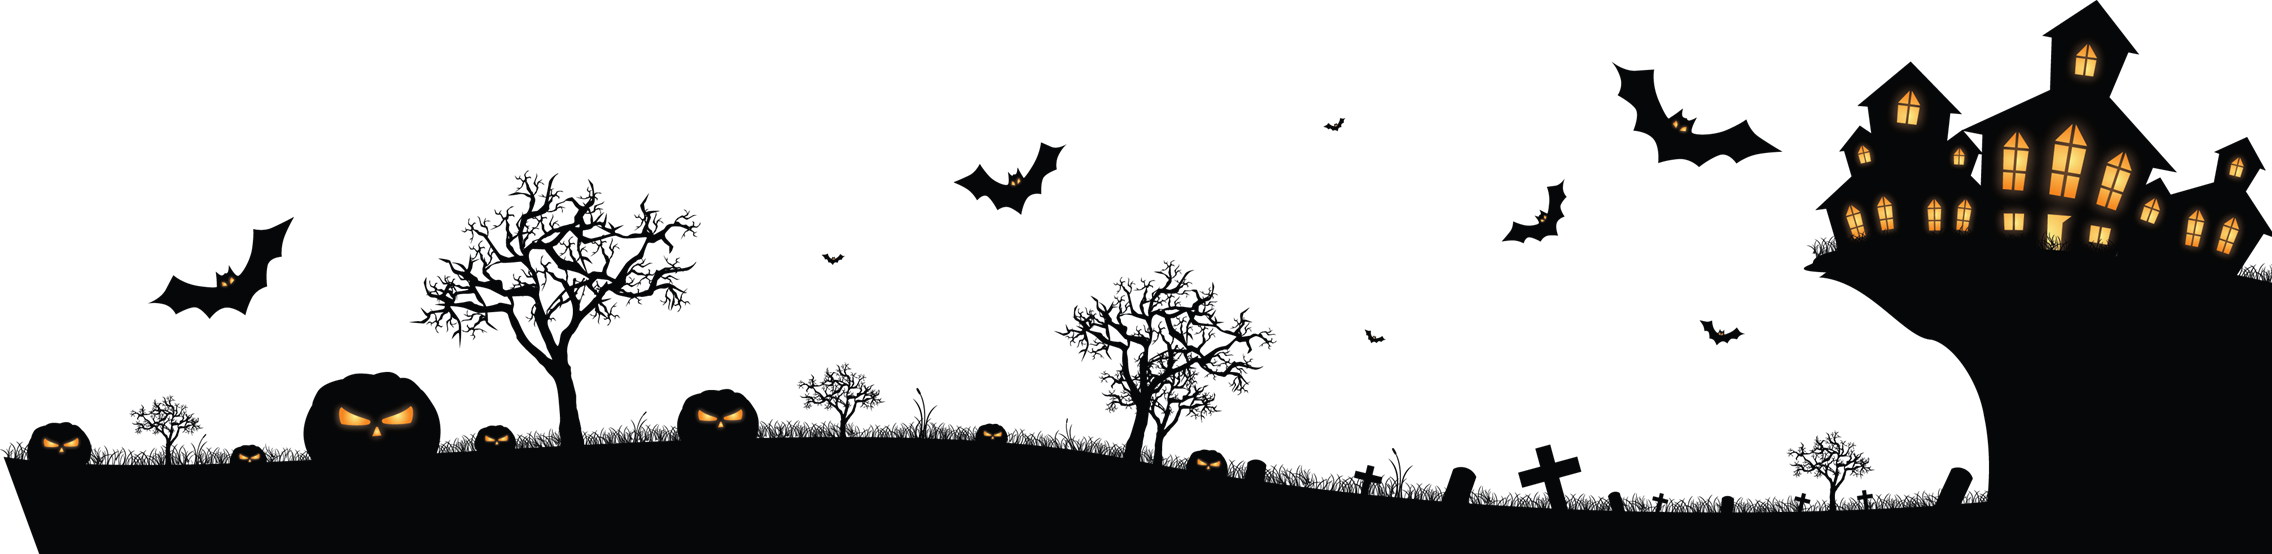 Backgrounds Halloween Pictures Group